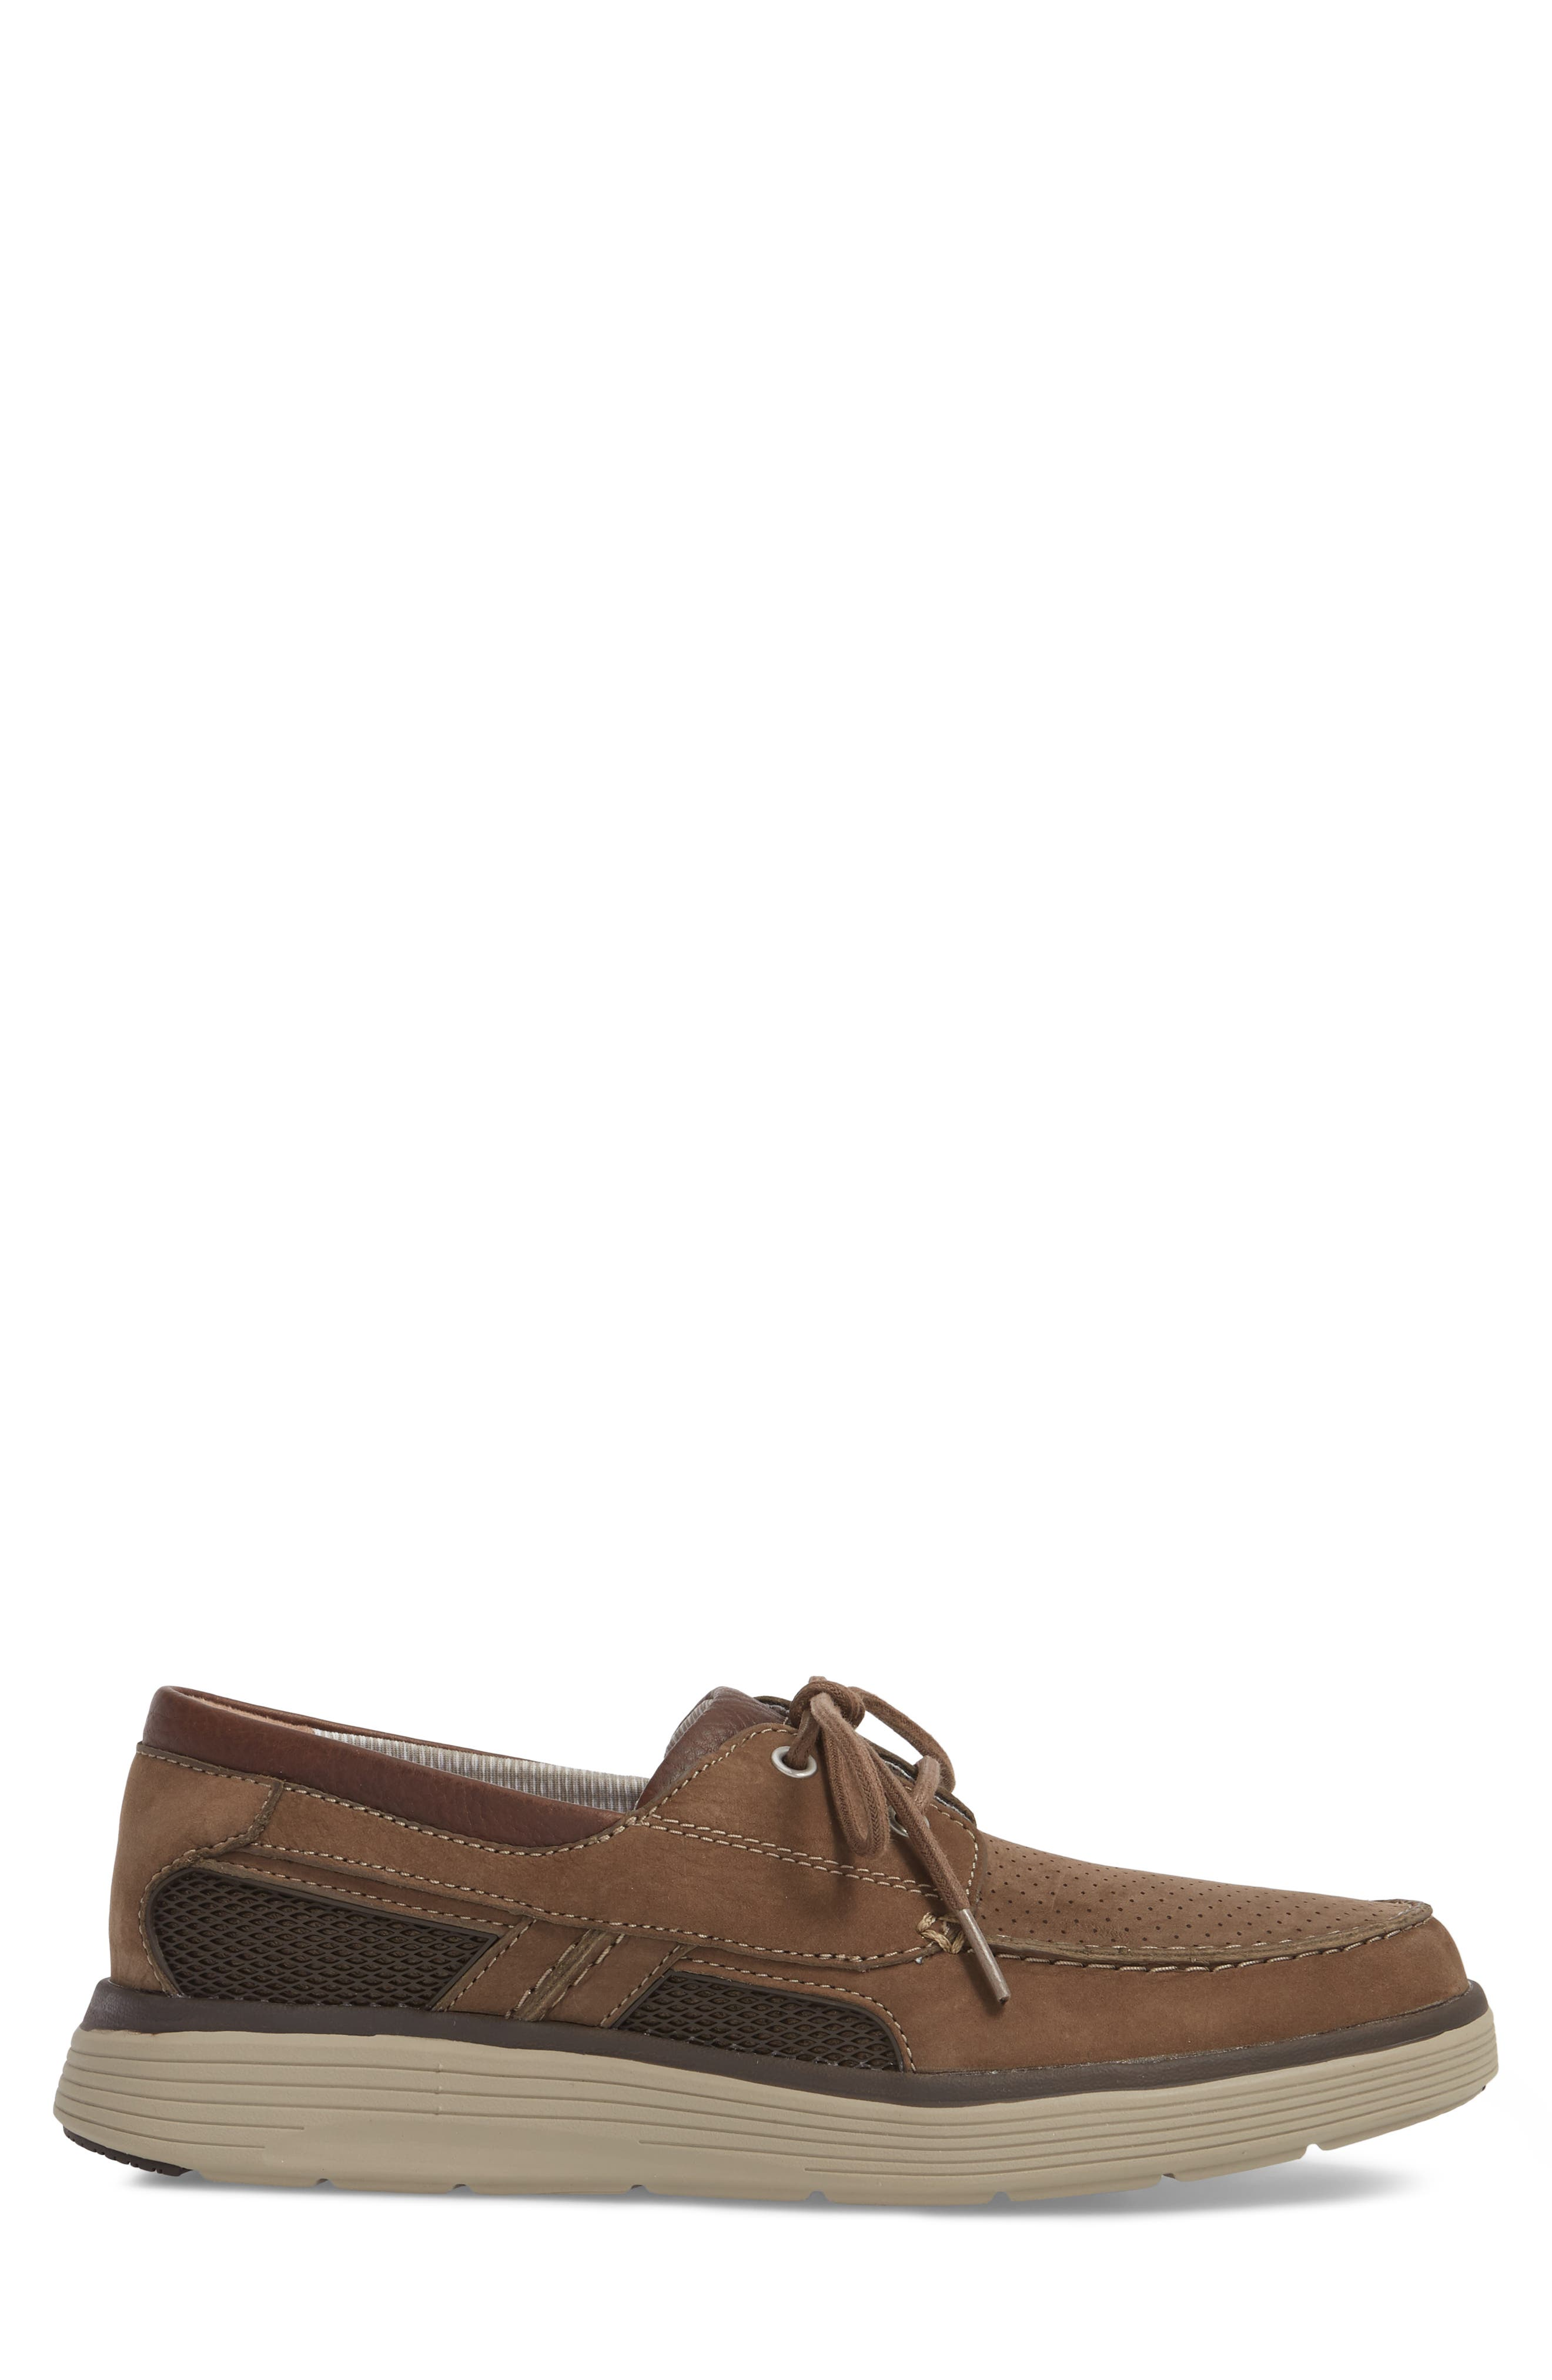 Clarks<sup>®</sup> Unabobe Step Boat Shoe,                             Alternate thumbnail 3, color,                             Olive Nubuck